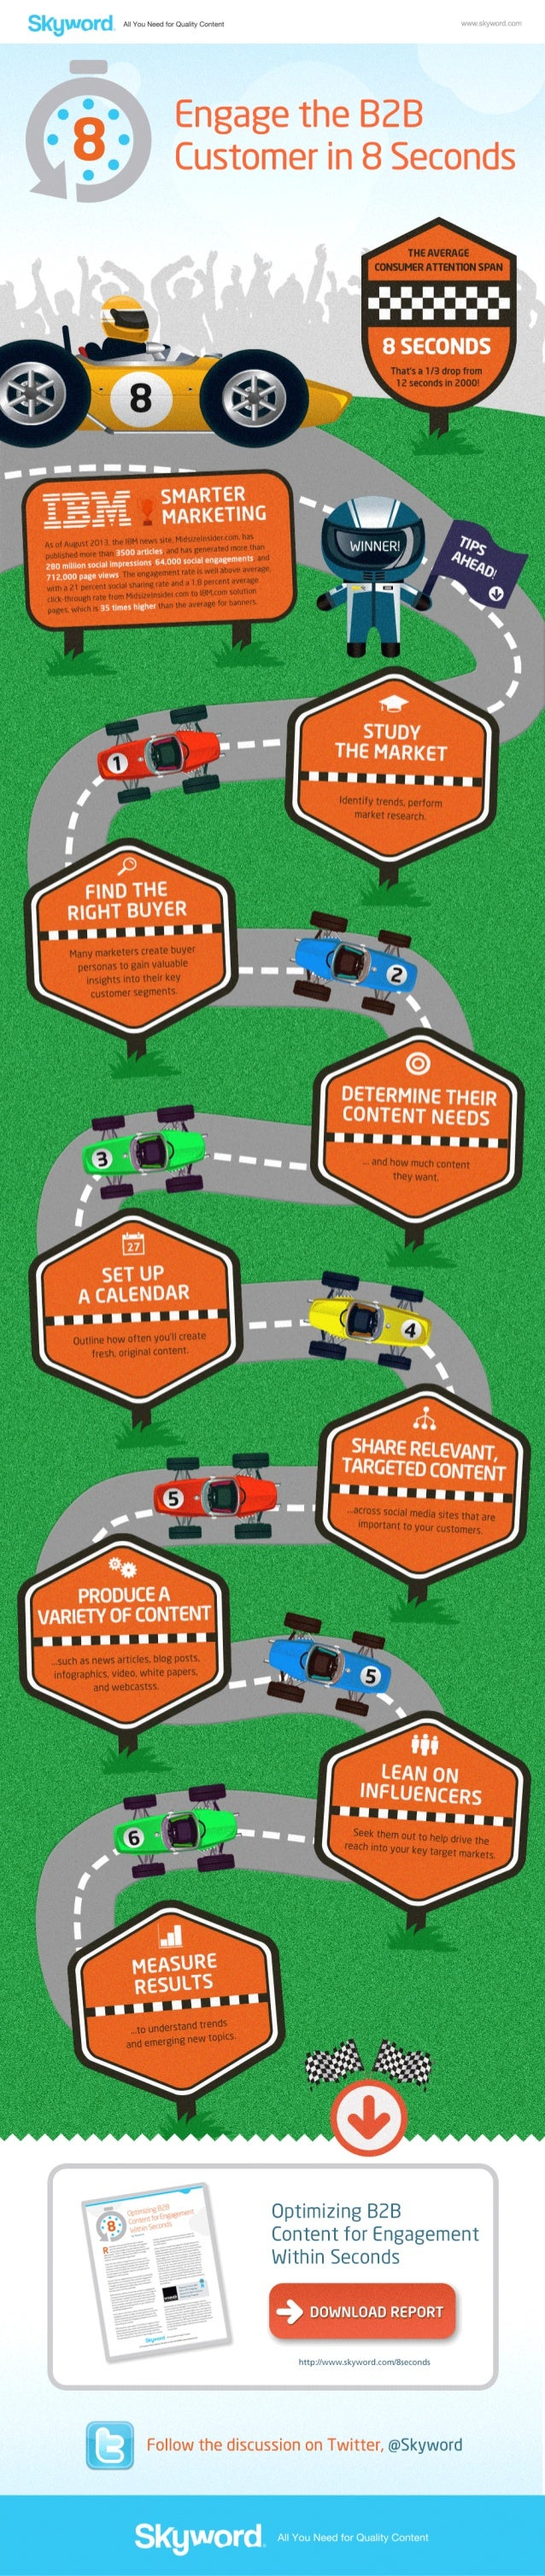 Infographic: You Have 8 Seconds to Engage the B2B Customer!